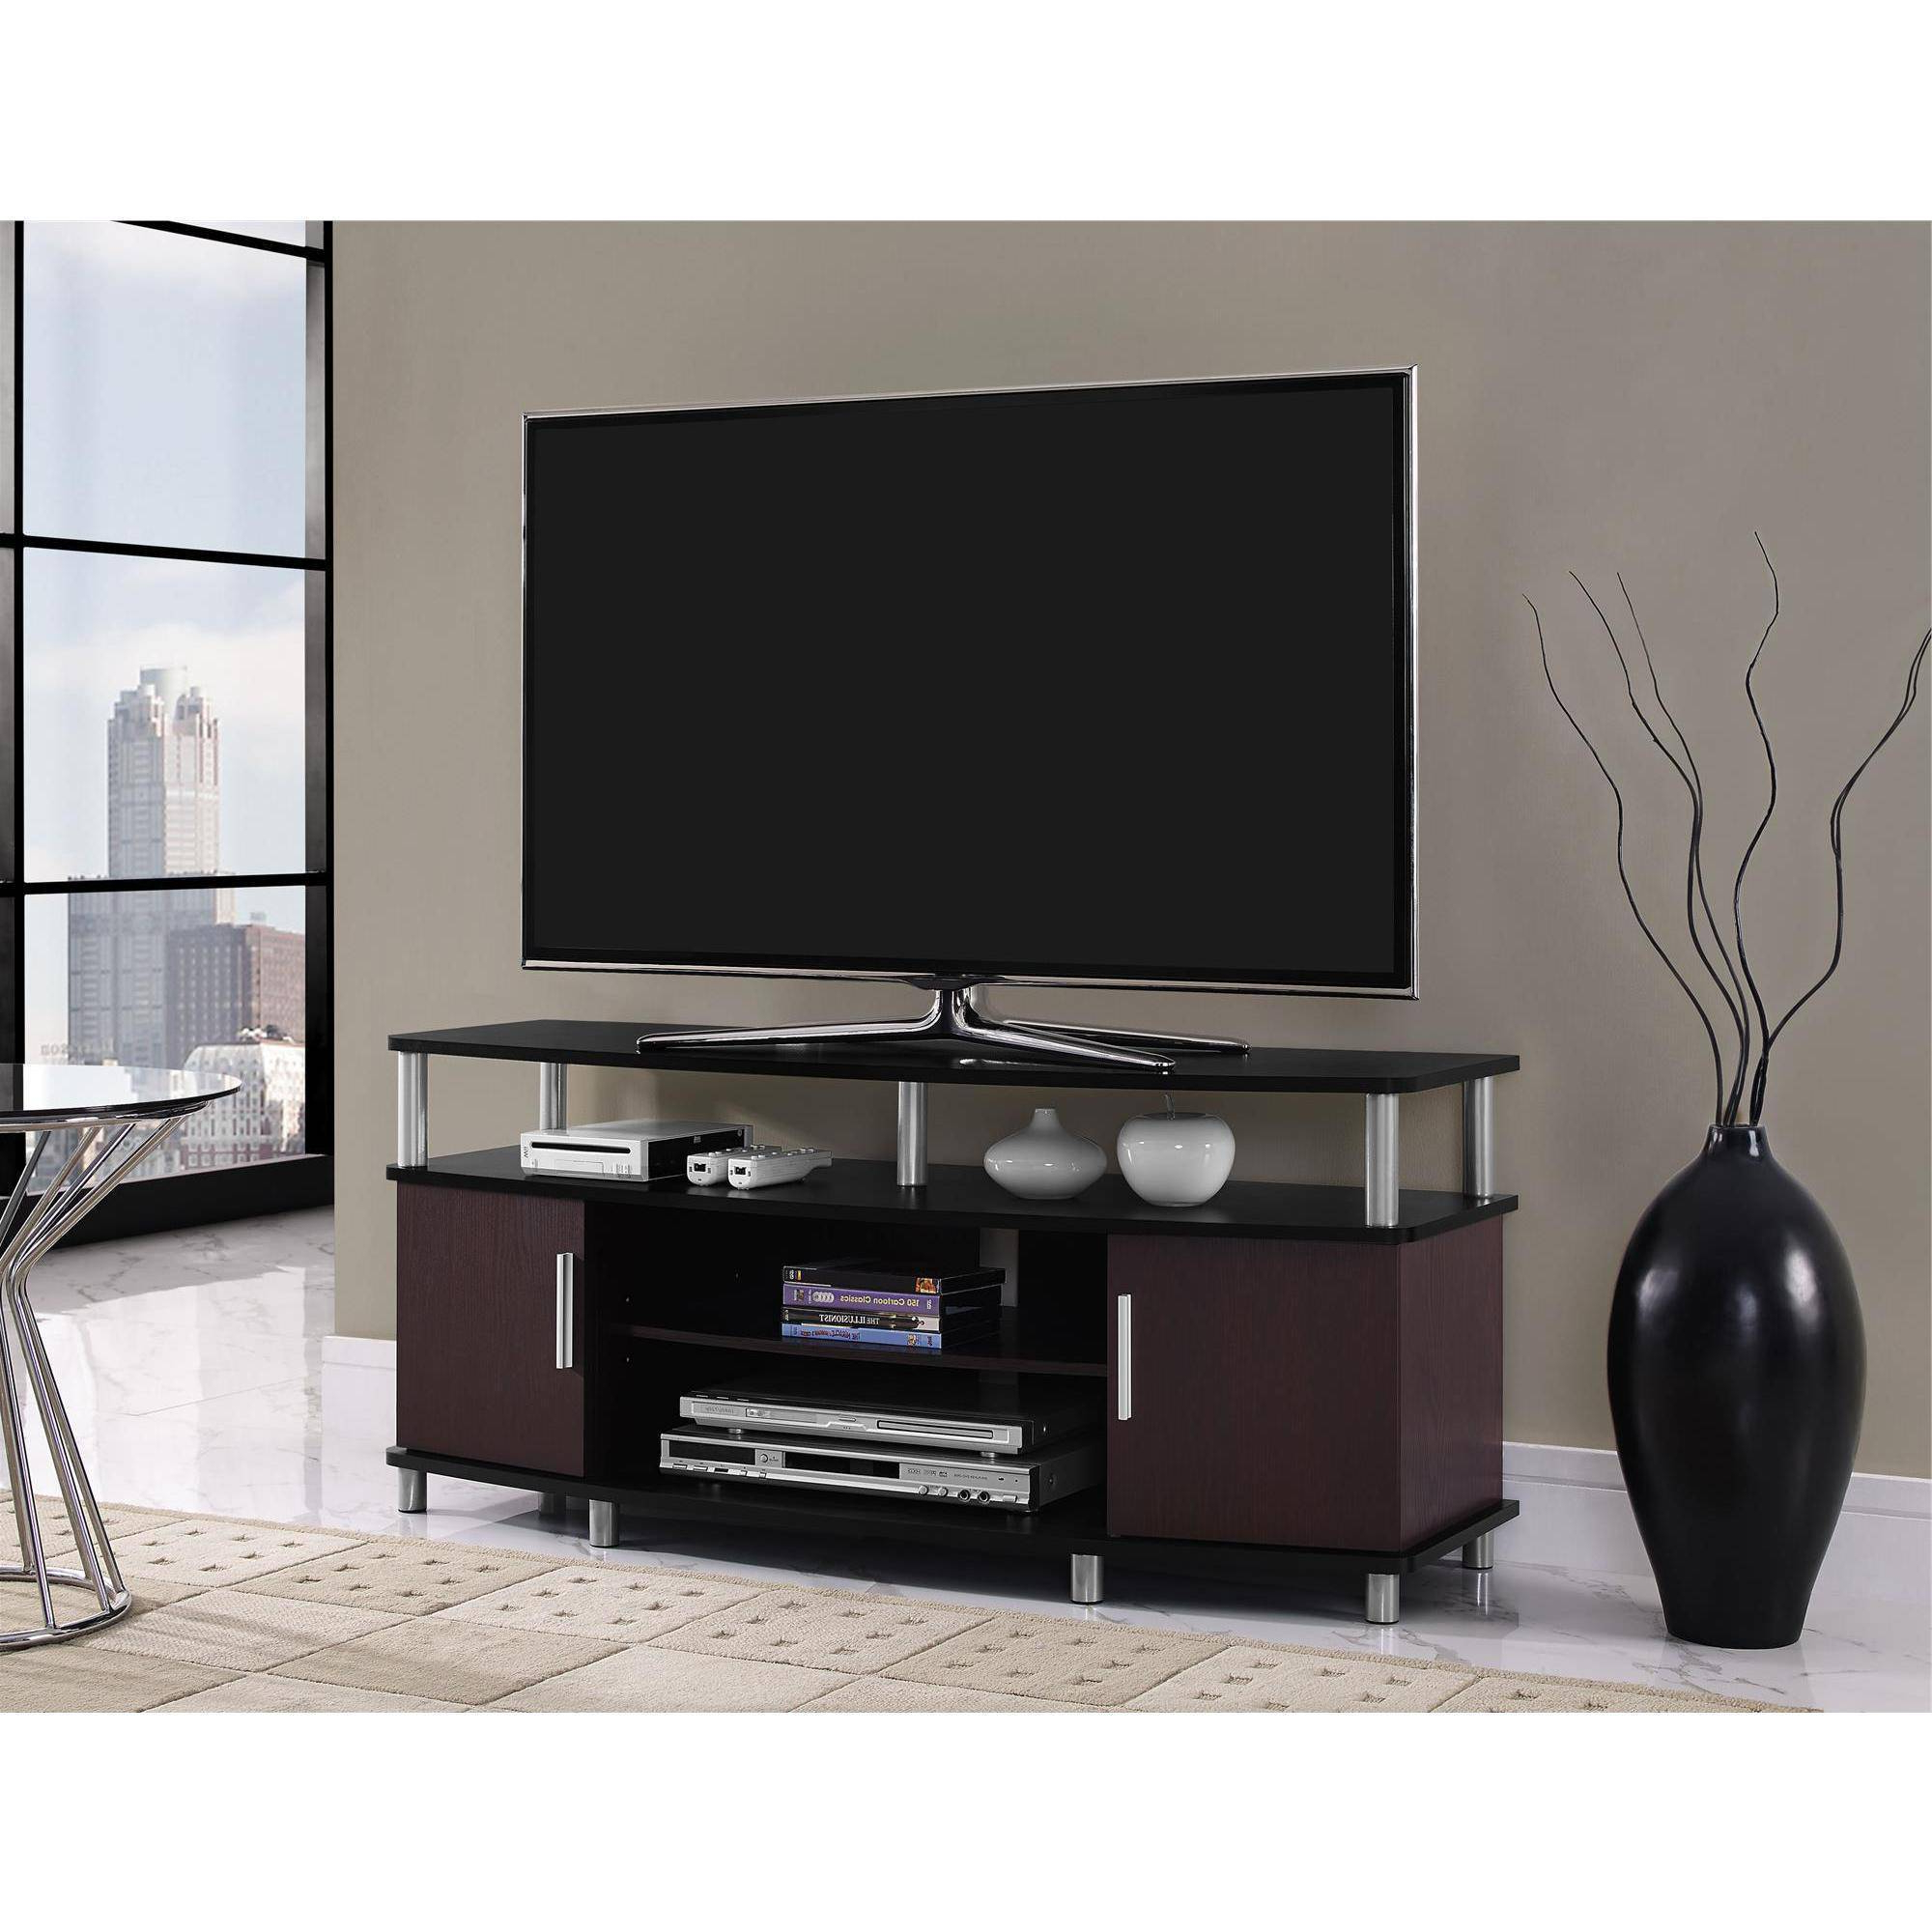 "Cherry Wood Tv Stands With Regard To Popular Carson Tv Stand, For Tvs Up To 50"", Multiple Finishes – Walmart (View 6 of 20)"